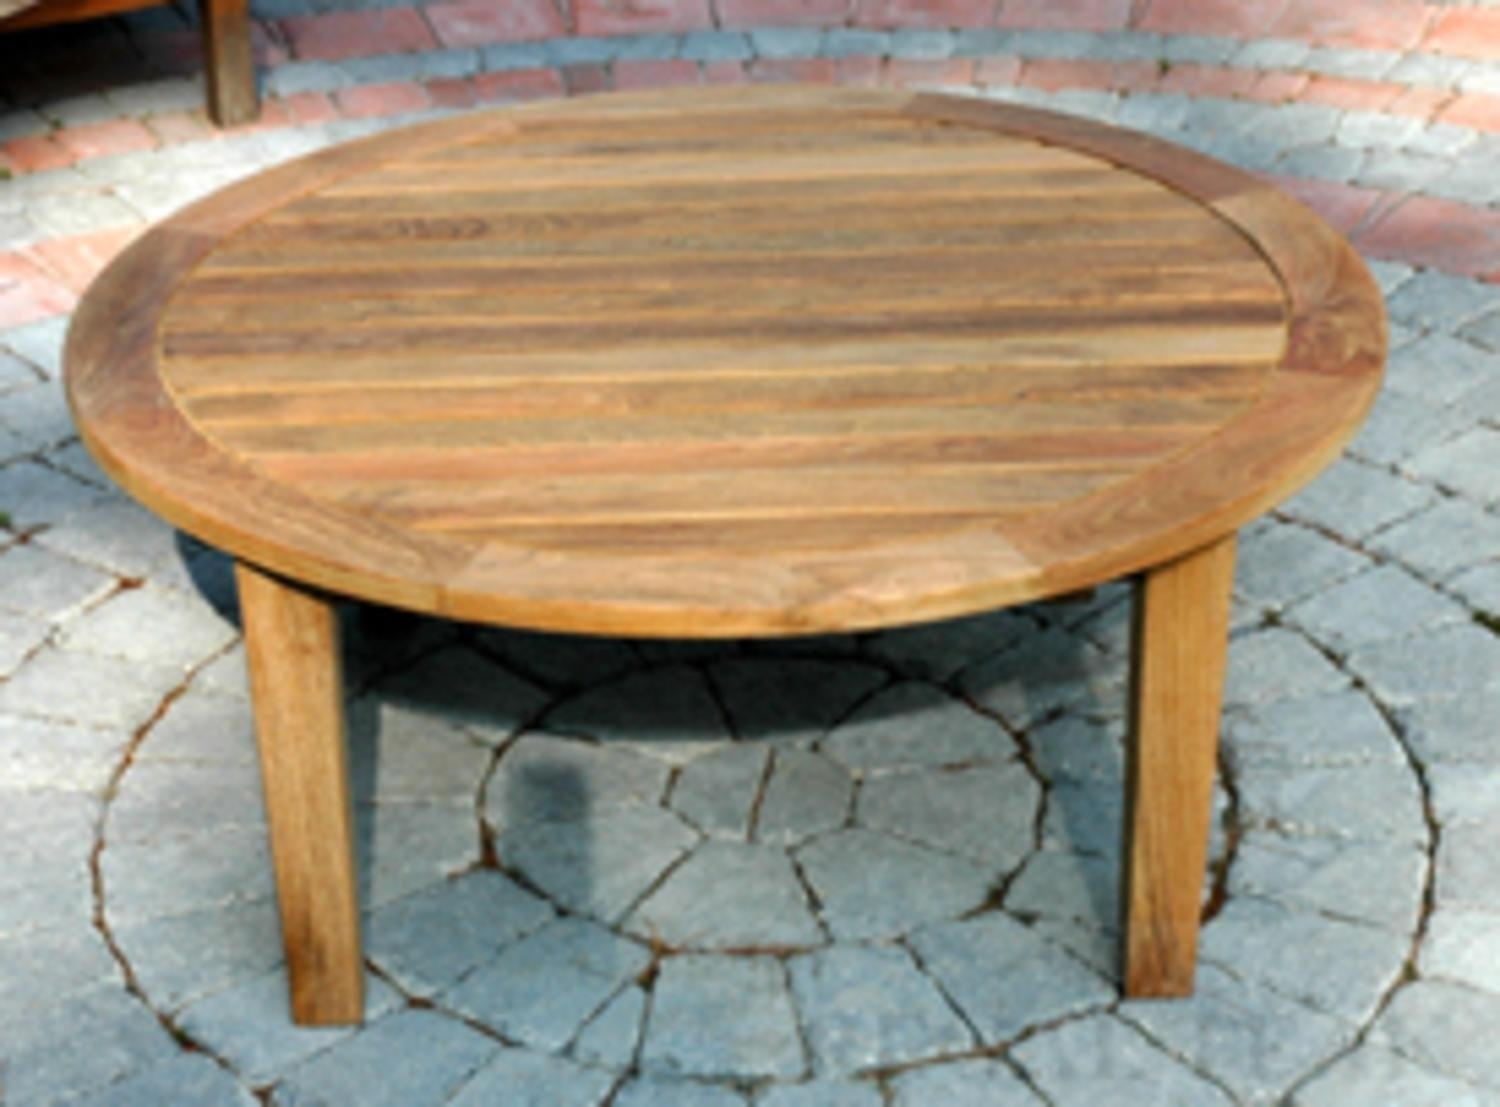 Cheap Teak Coffee Table Outdoor, Find Teak Coffee Table Outdoor throughout Round Teak Coffee Tables (Image 4 of 30)